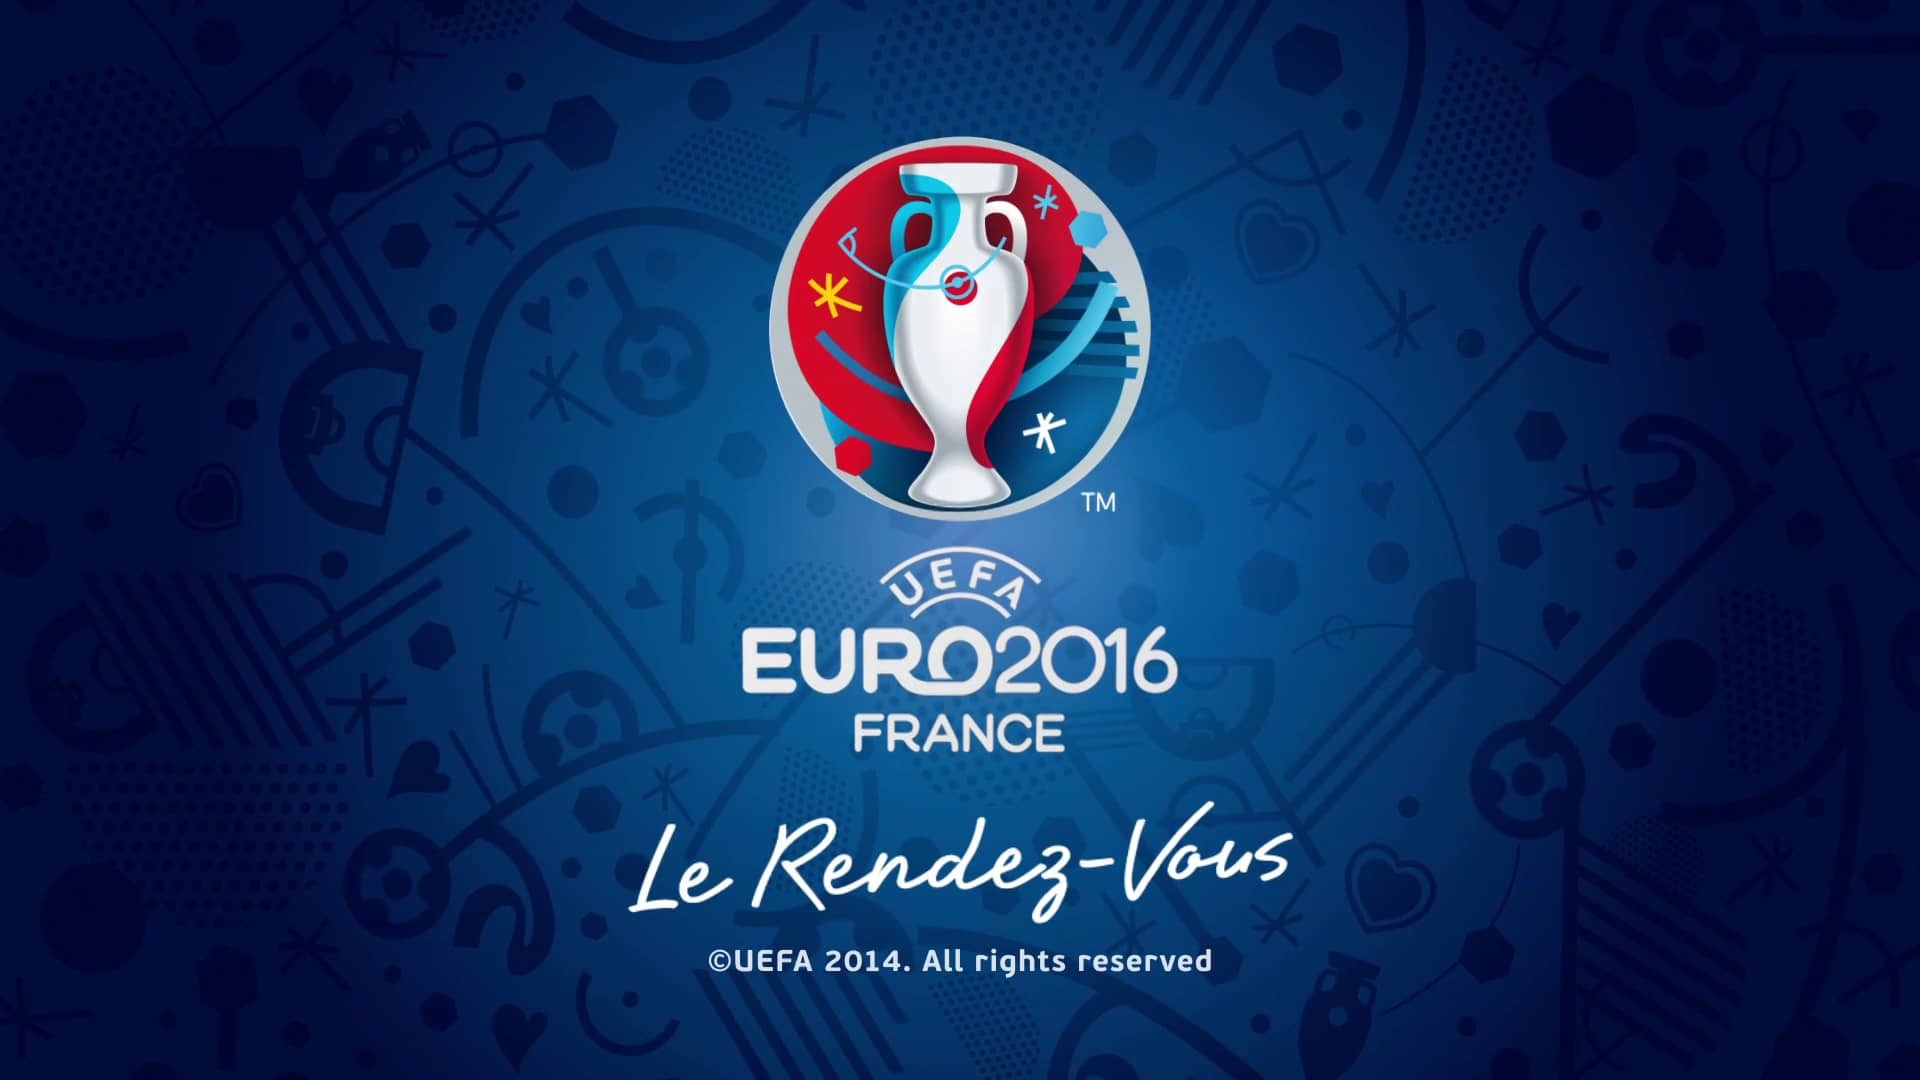 marketing y publicidad en la Eurocopa 2016